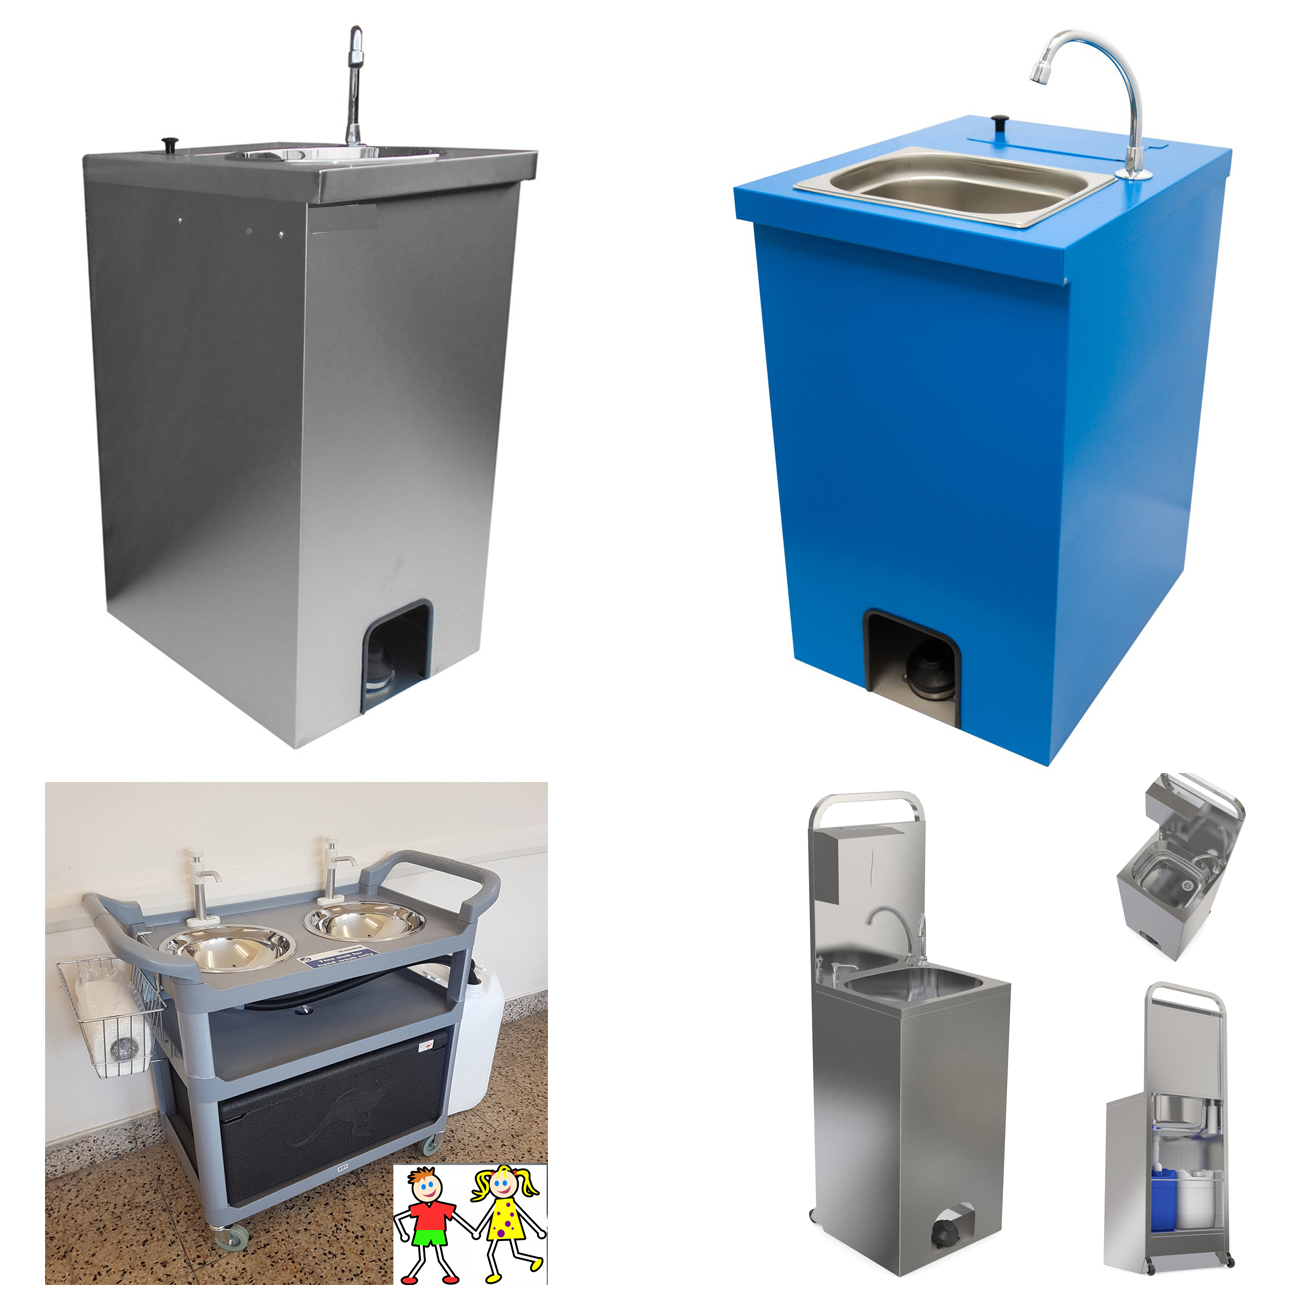 Portable hand wash sinks 9 variants from £325 COVID